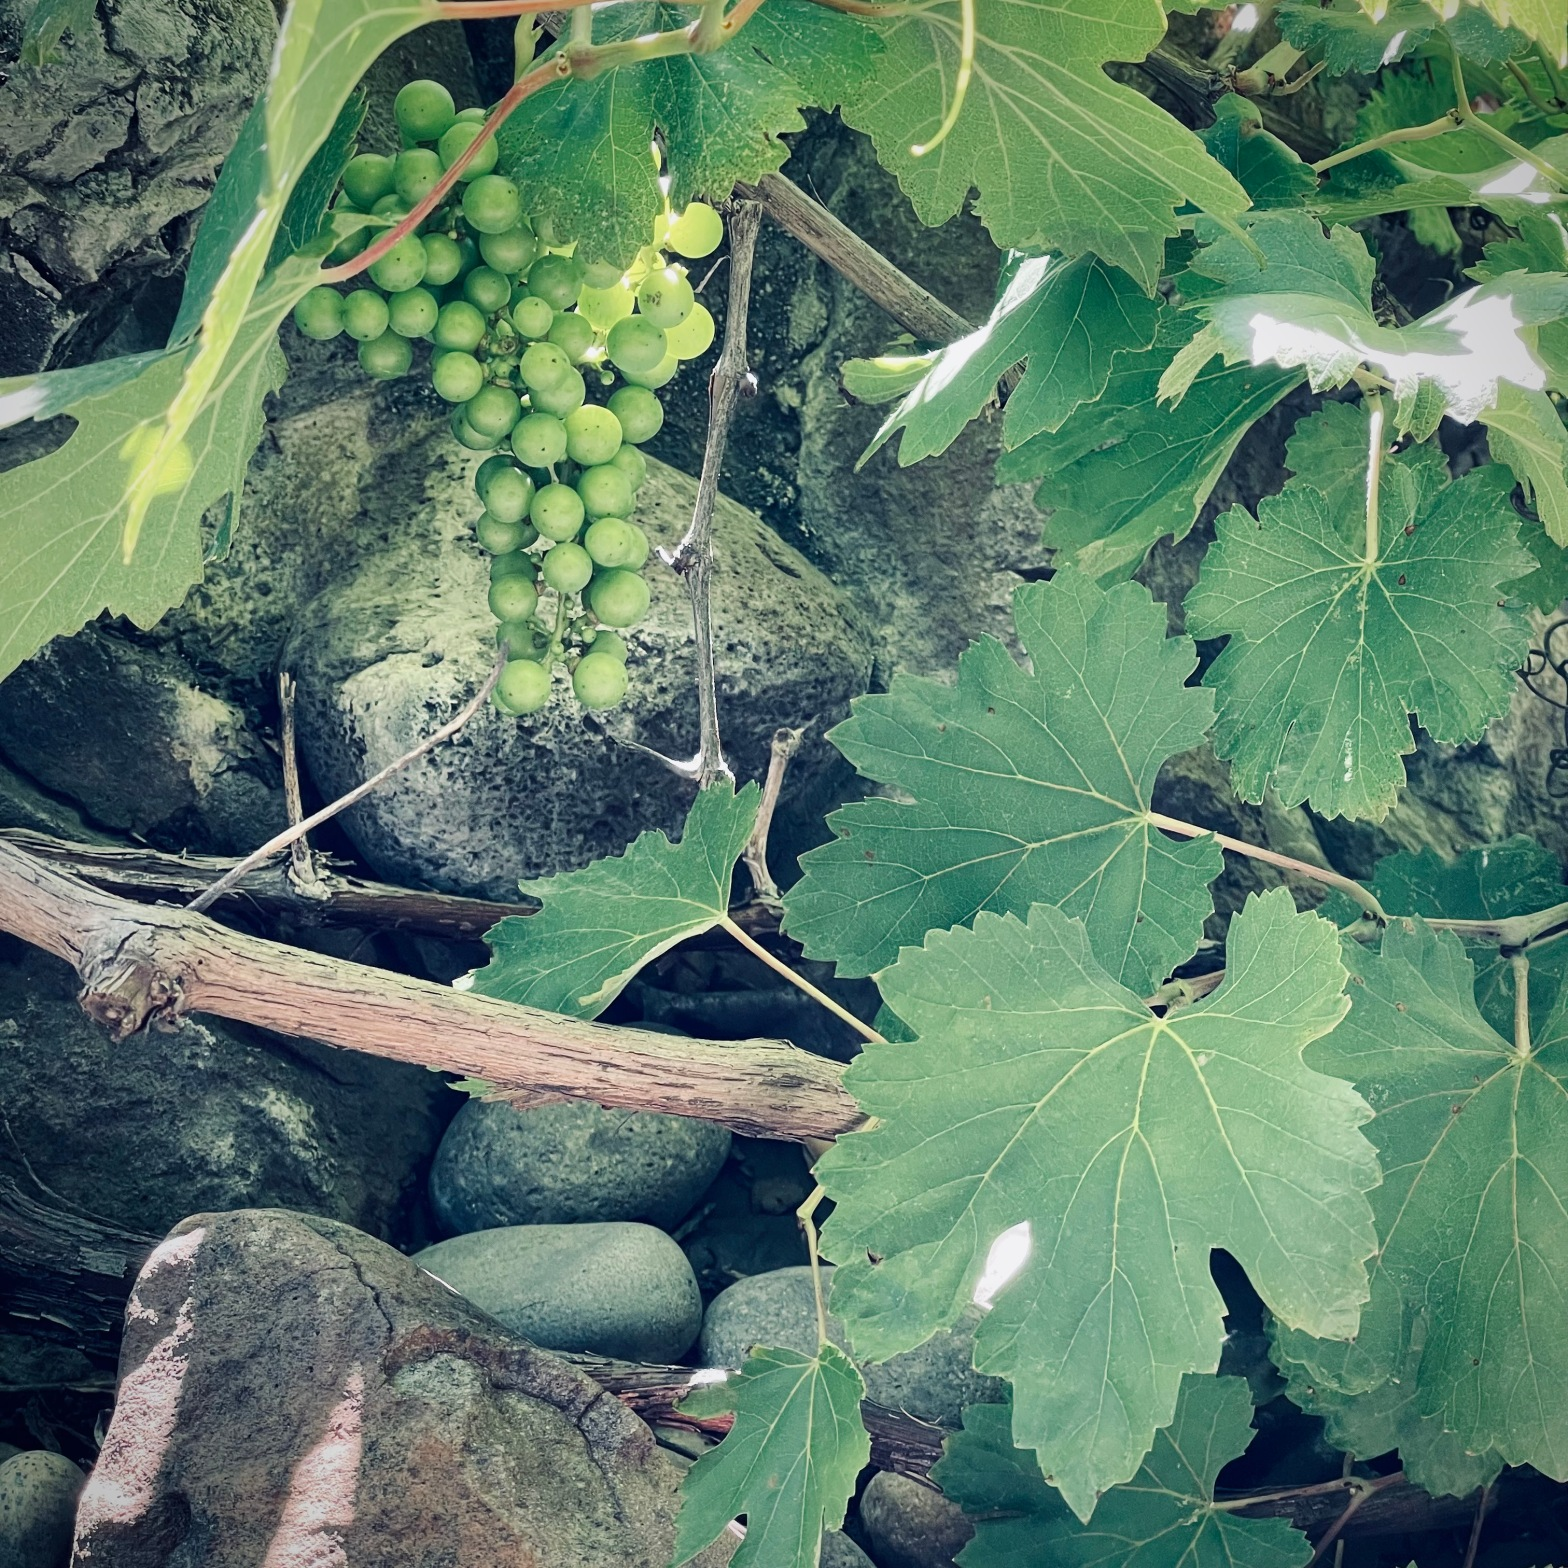 Grapevine with grapes.